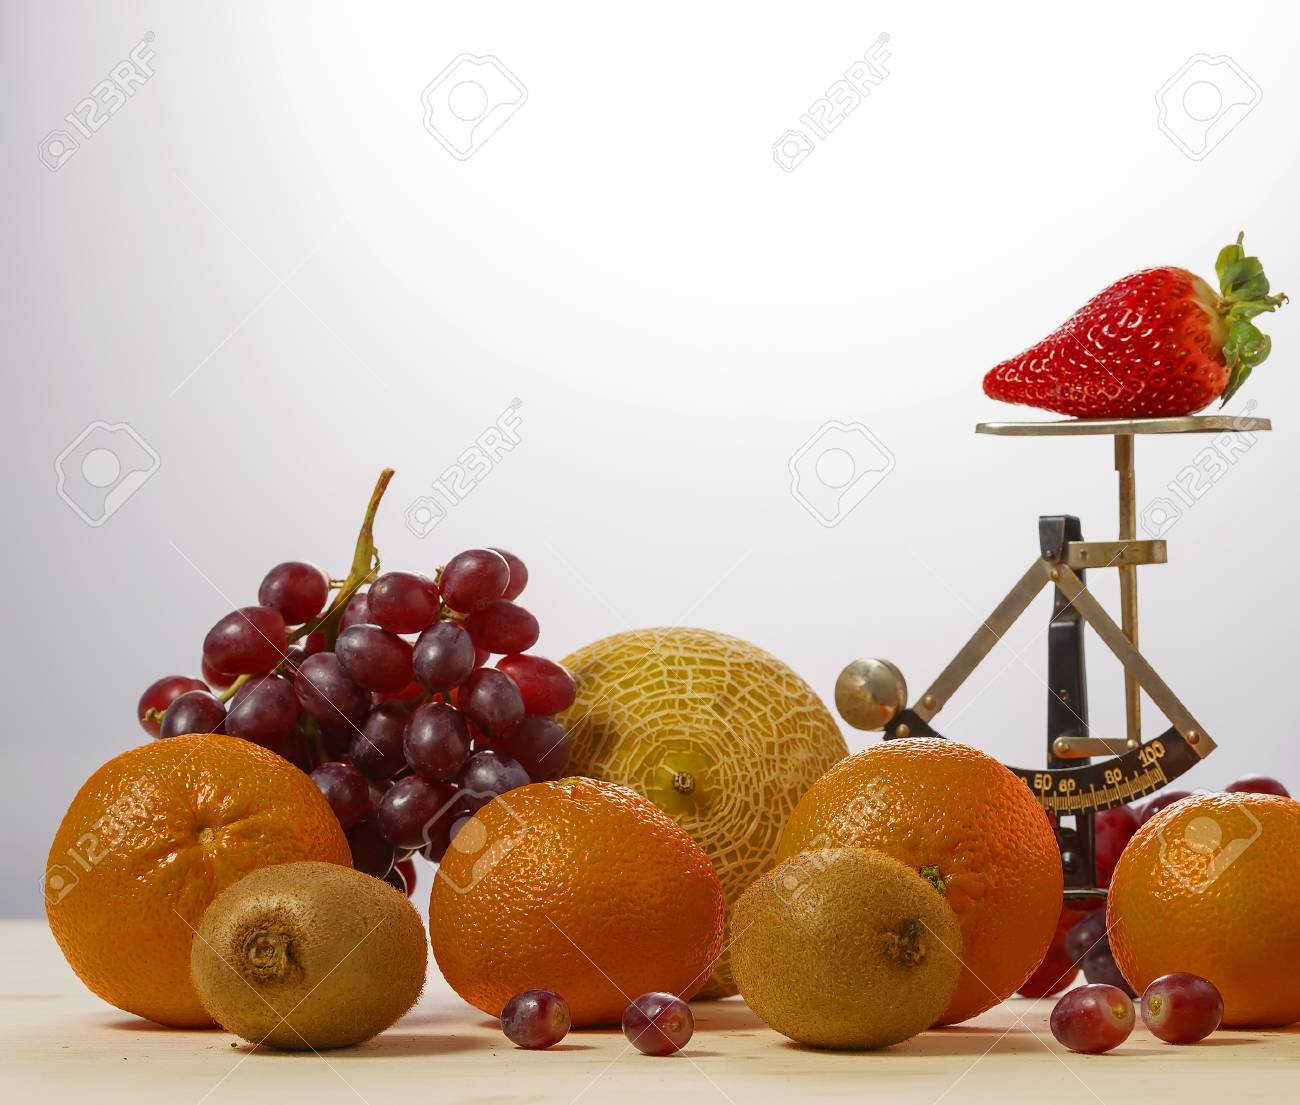 Trade With Fresh Juicy Fruits With Old Kitchen Scales Stock Photo ...